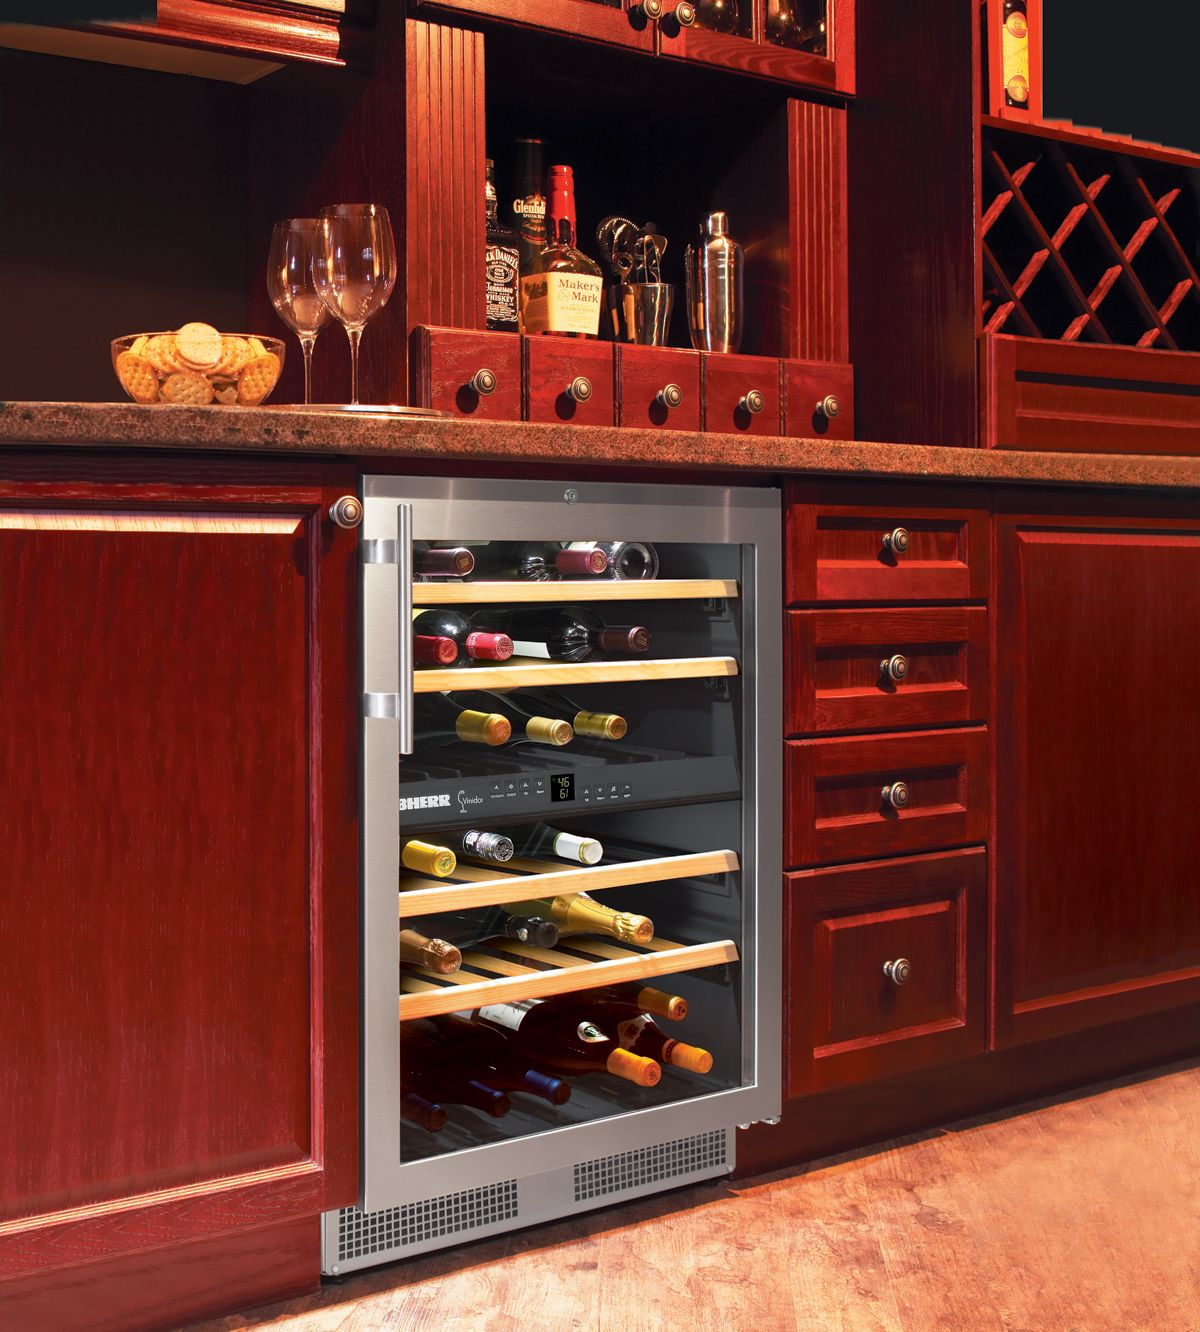 A Liebherr Wine Fridge Perfect For Any Mancave Or Home Bar Mancave Liebherr Homedecor Ho Wine Storage Cabinets Wine Room Design Built In Wine Refrigerator